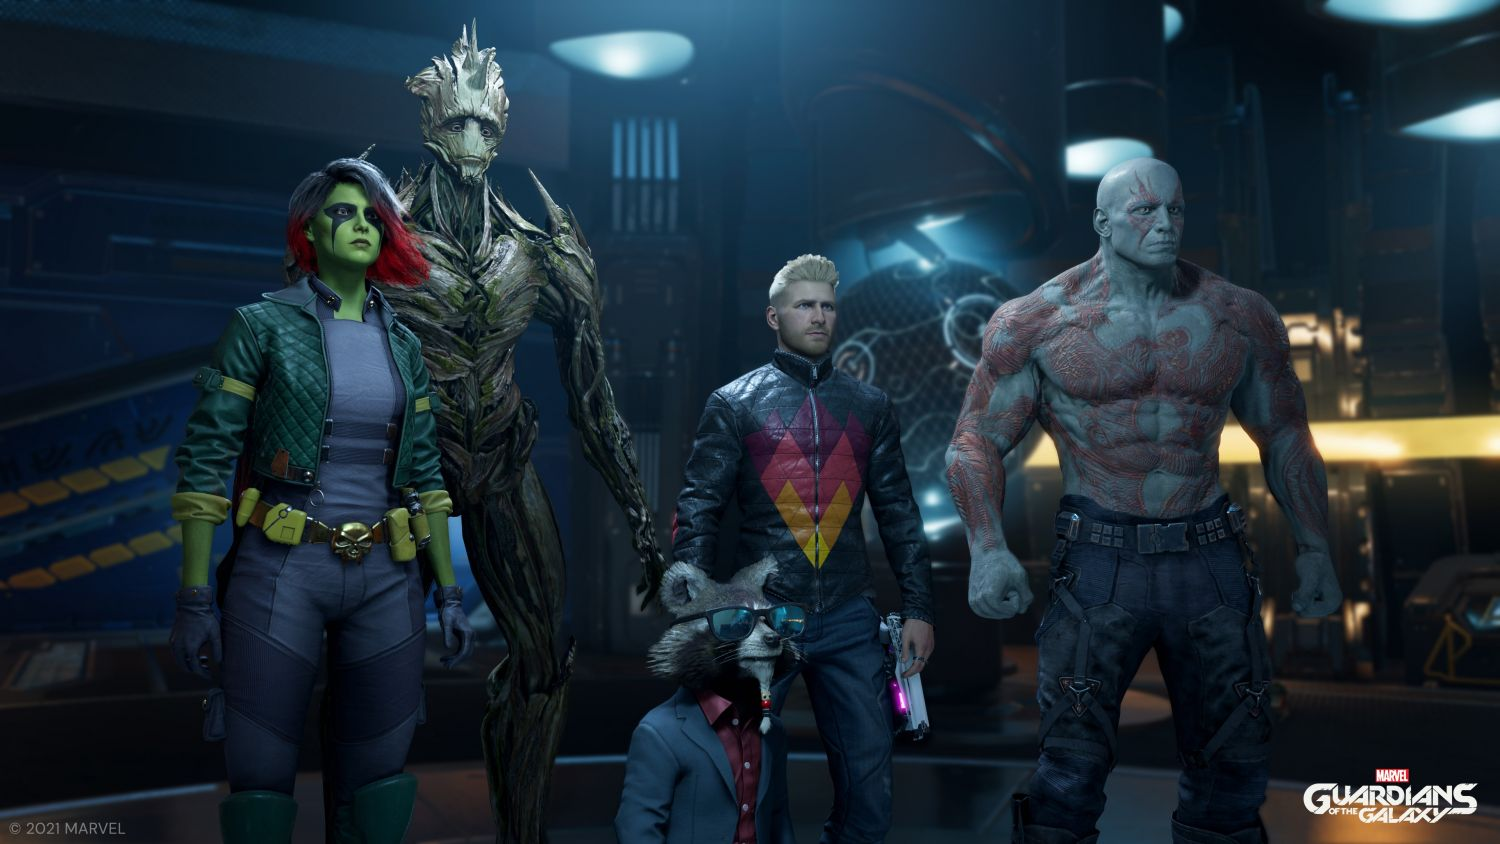 Geek Preview: Marvel's Guardians of the Galaxy - The Guardians